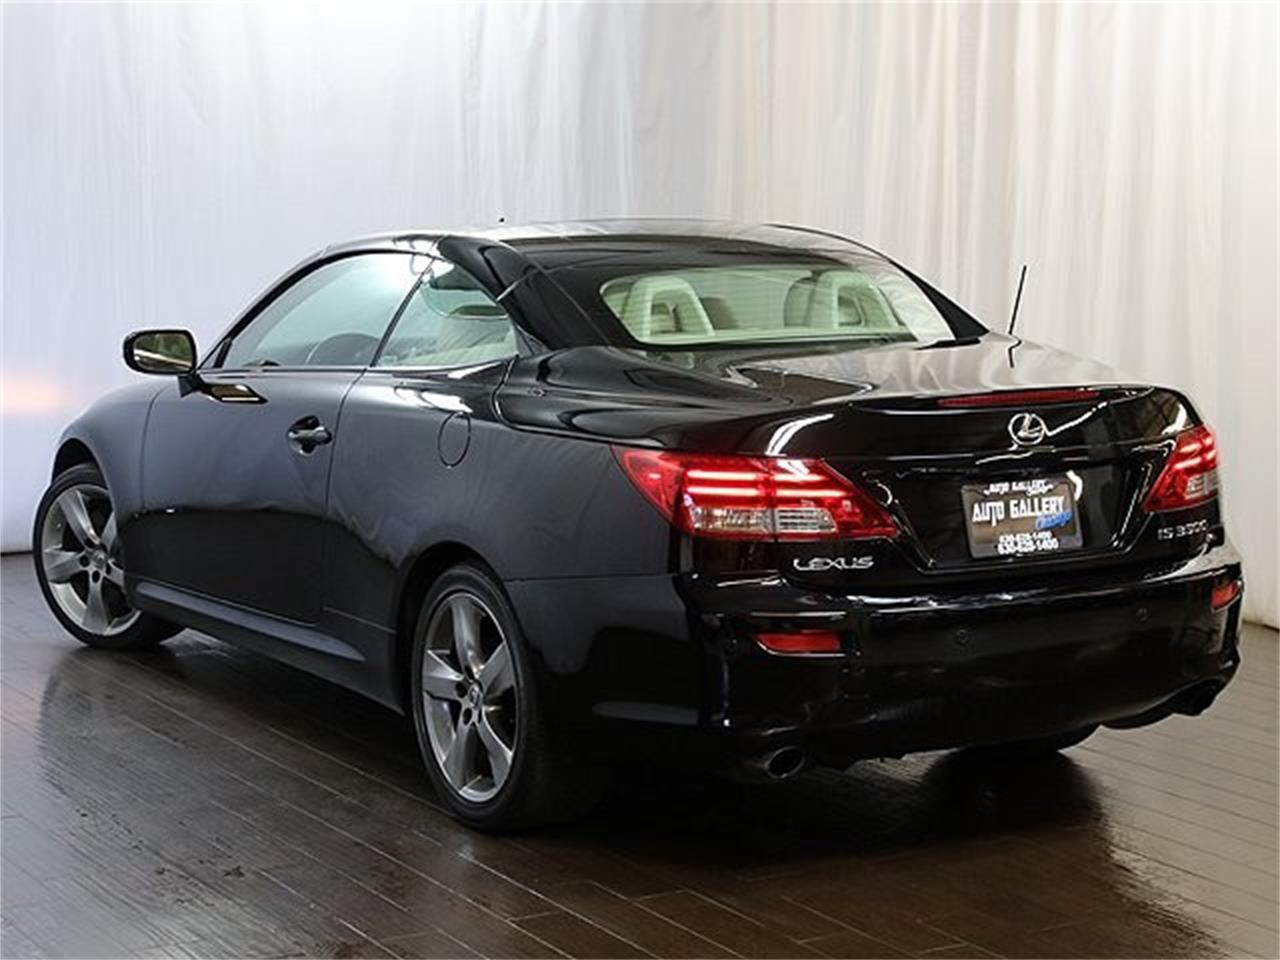 Large Picture of 2010 Lexus IS350 located in Addison Illinois - $15,990.00 Offered by Auto Gallery Chicago - QIG4